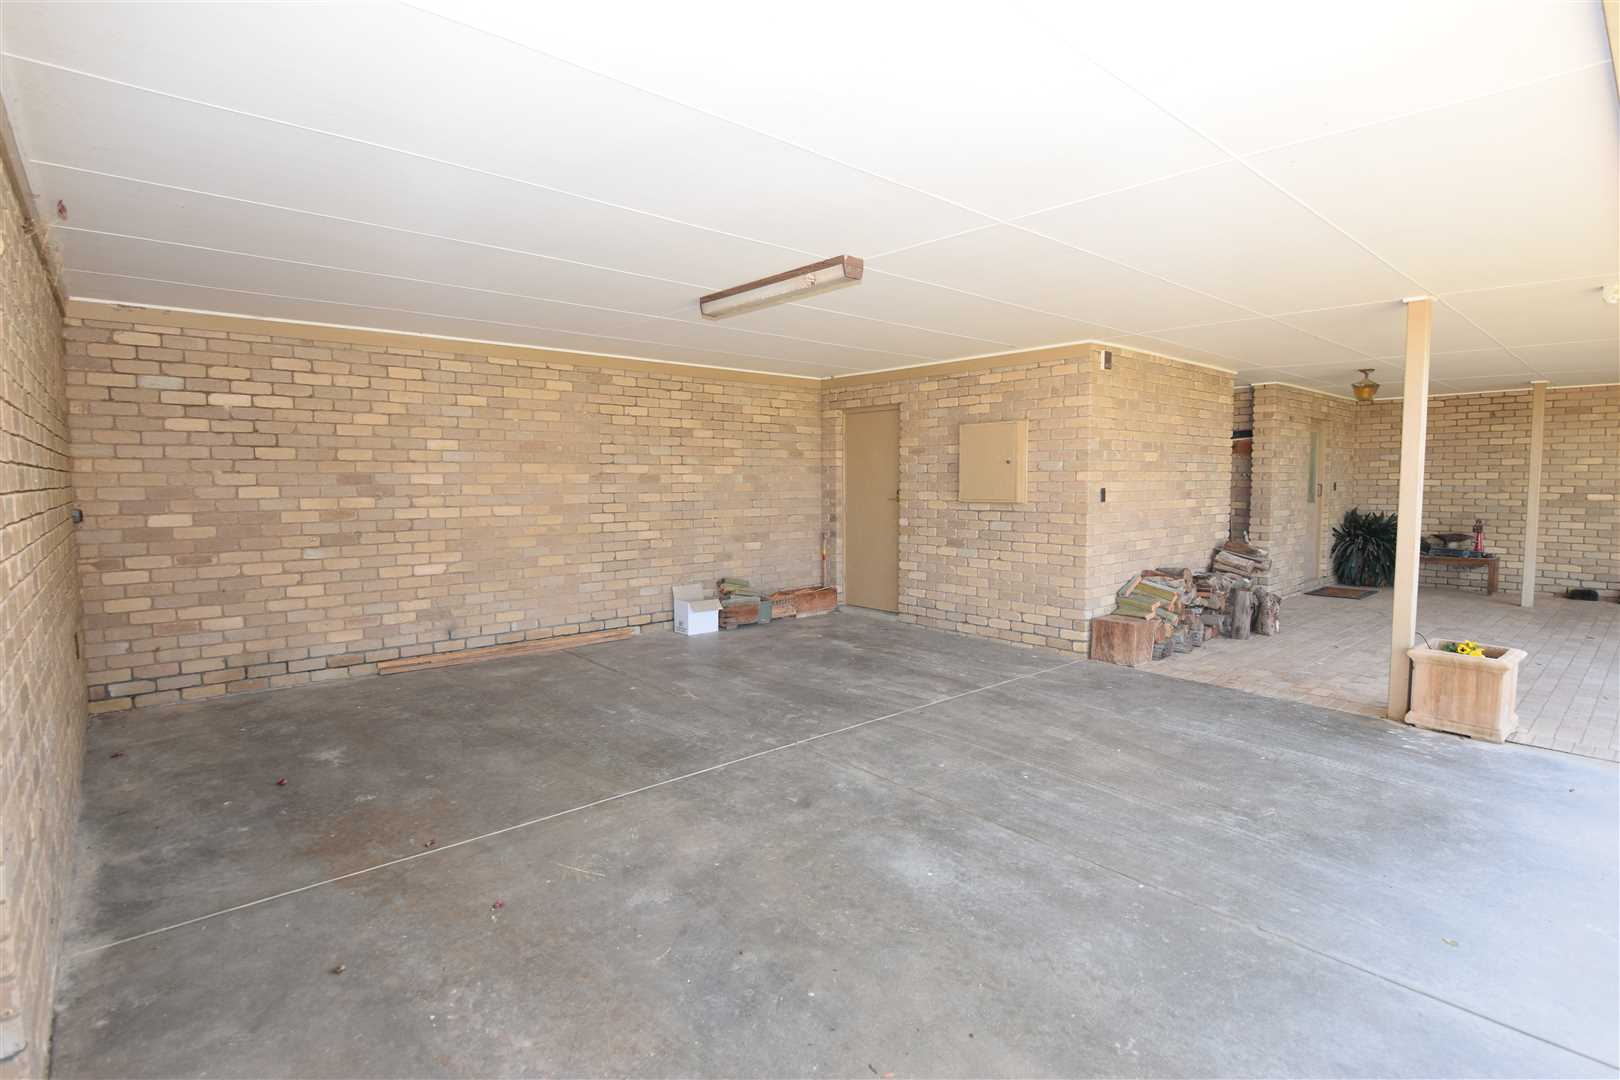 Carport, Storage, outside toilet